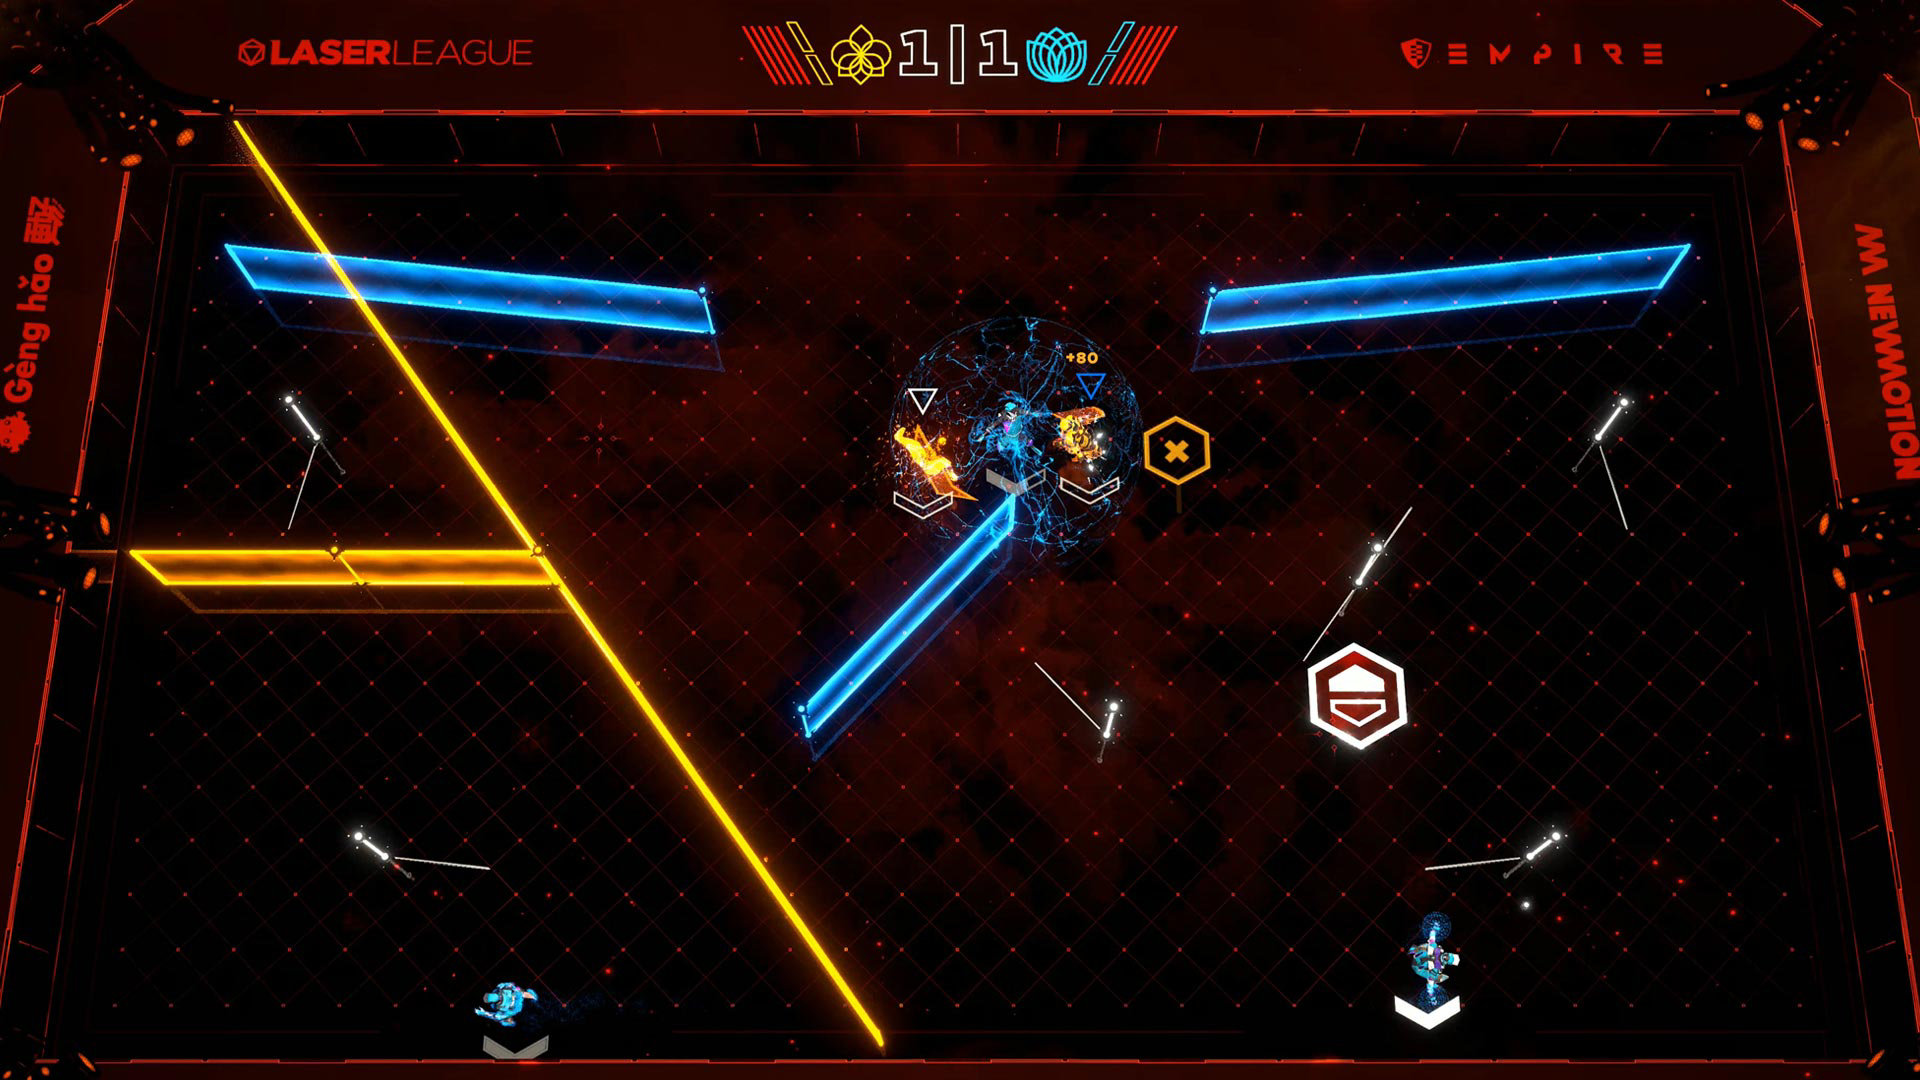 Laser League Game Ps4 Playstation How To Repair Your Plasystation 3 Screenshot 7